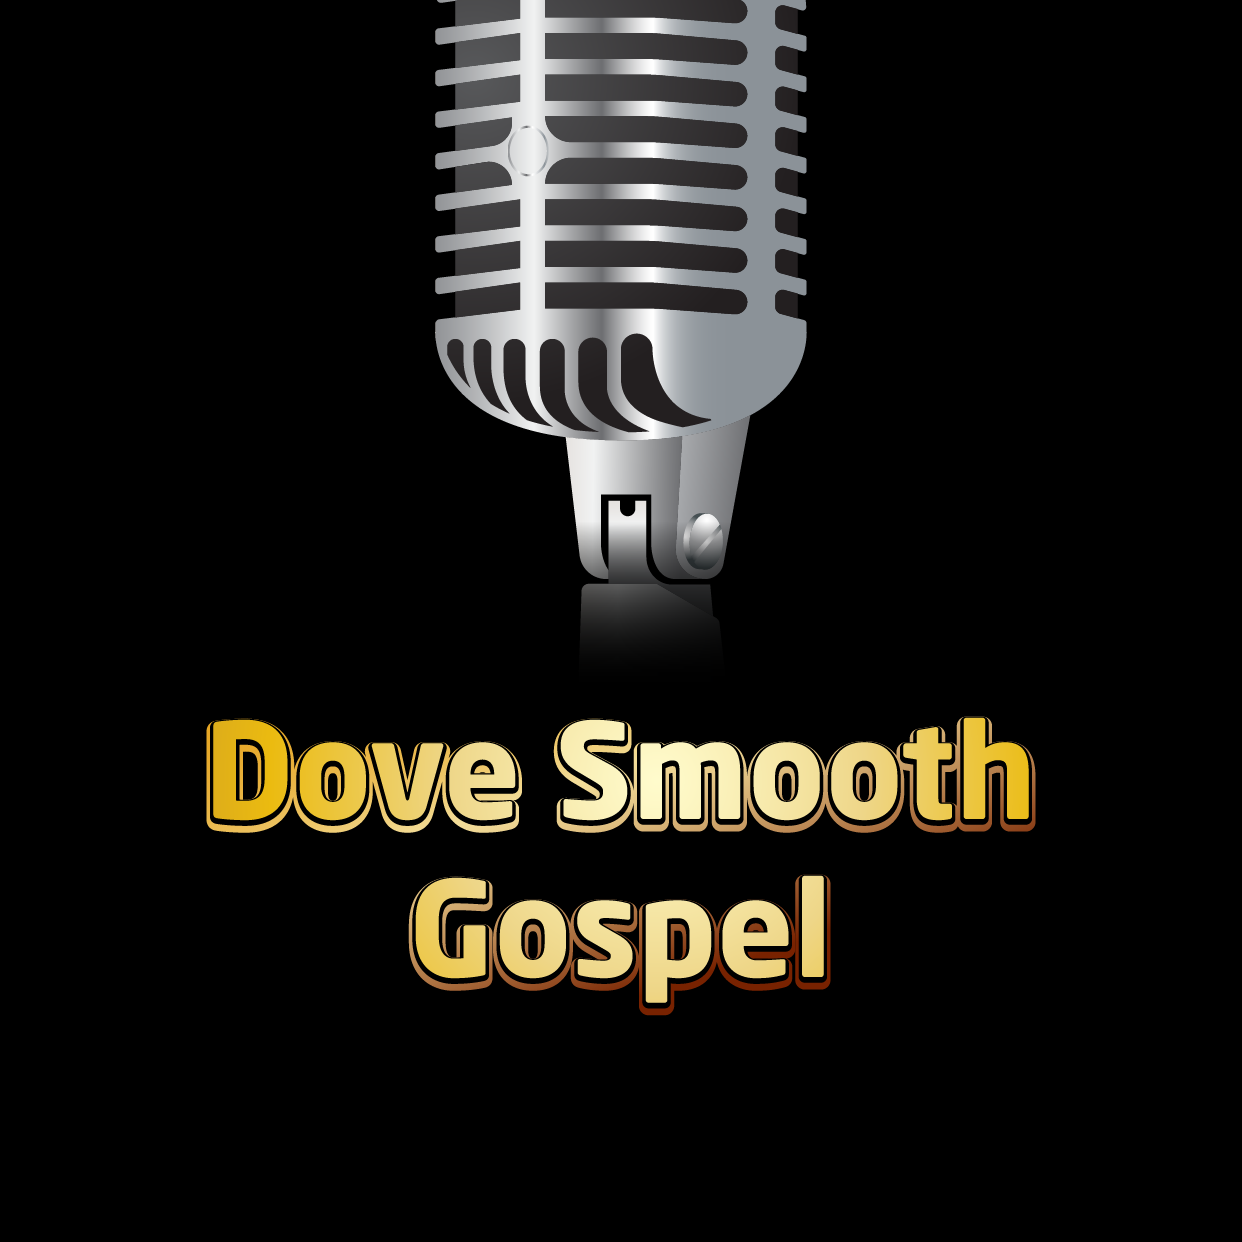 Dove Smooth Gospel 1